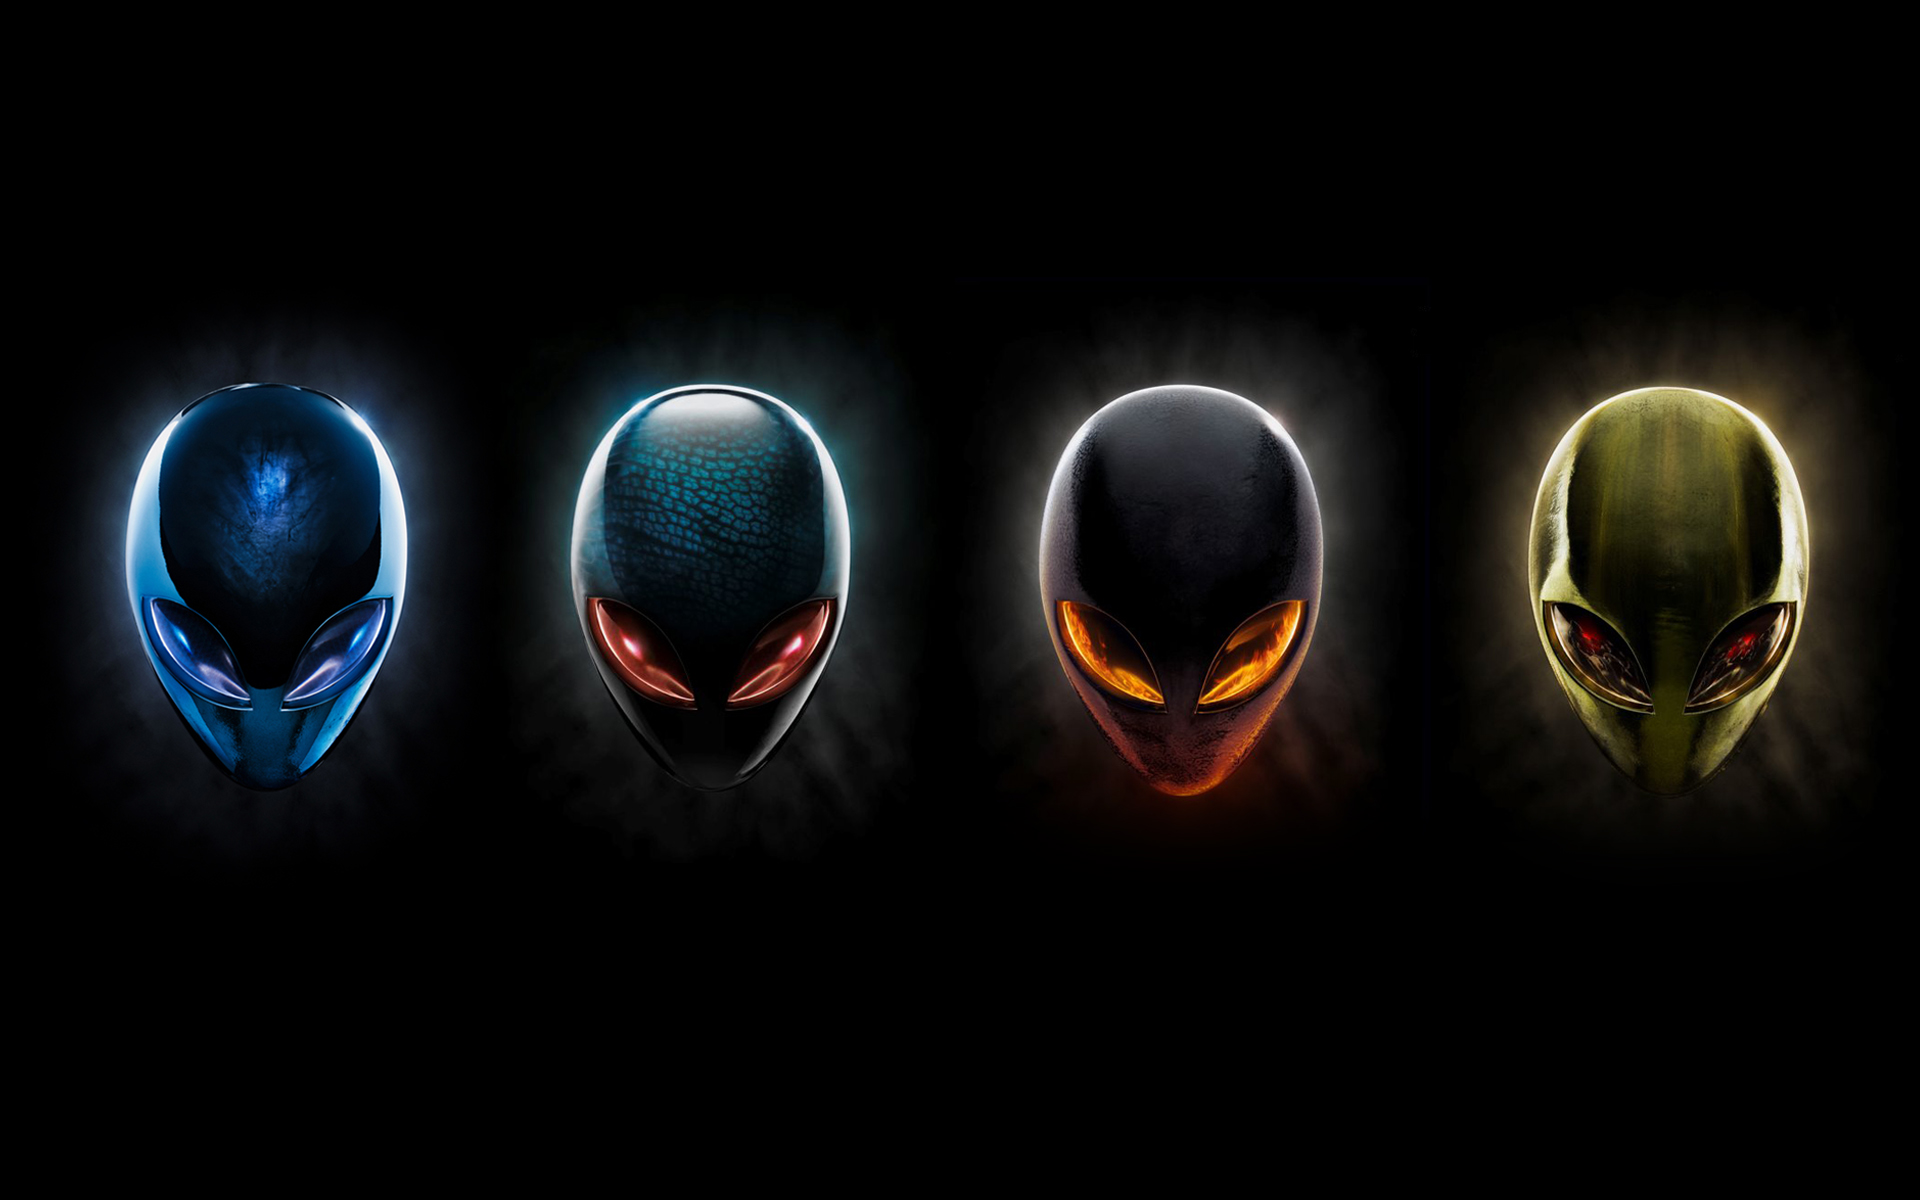 Alienware-4-colour-heads Wallpaper, Desktop, HD, Free Download